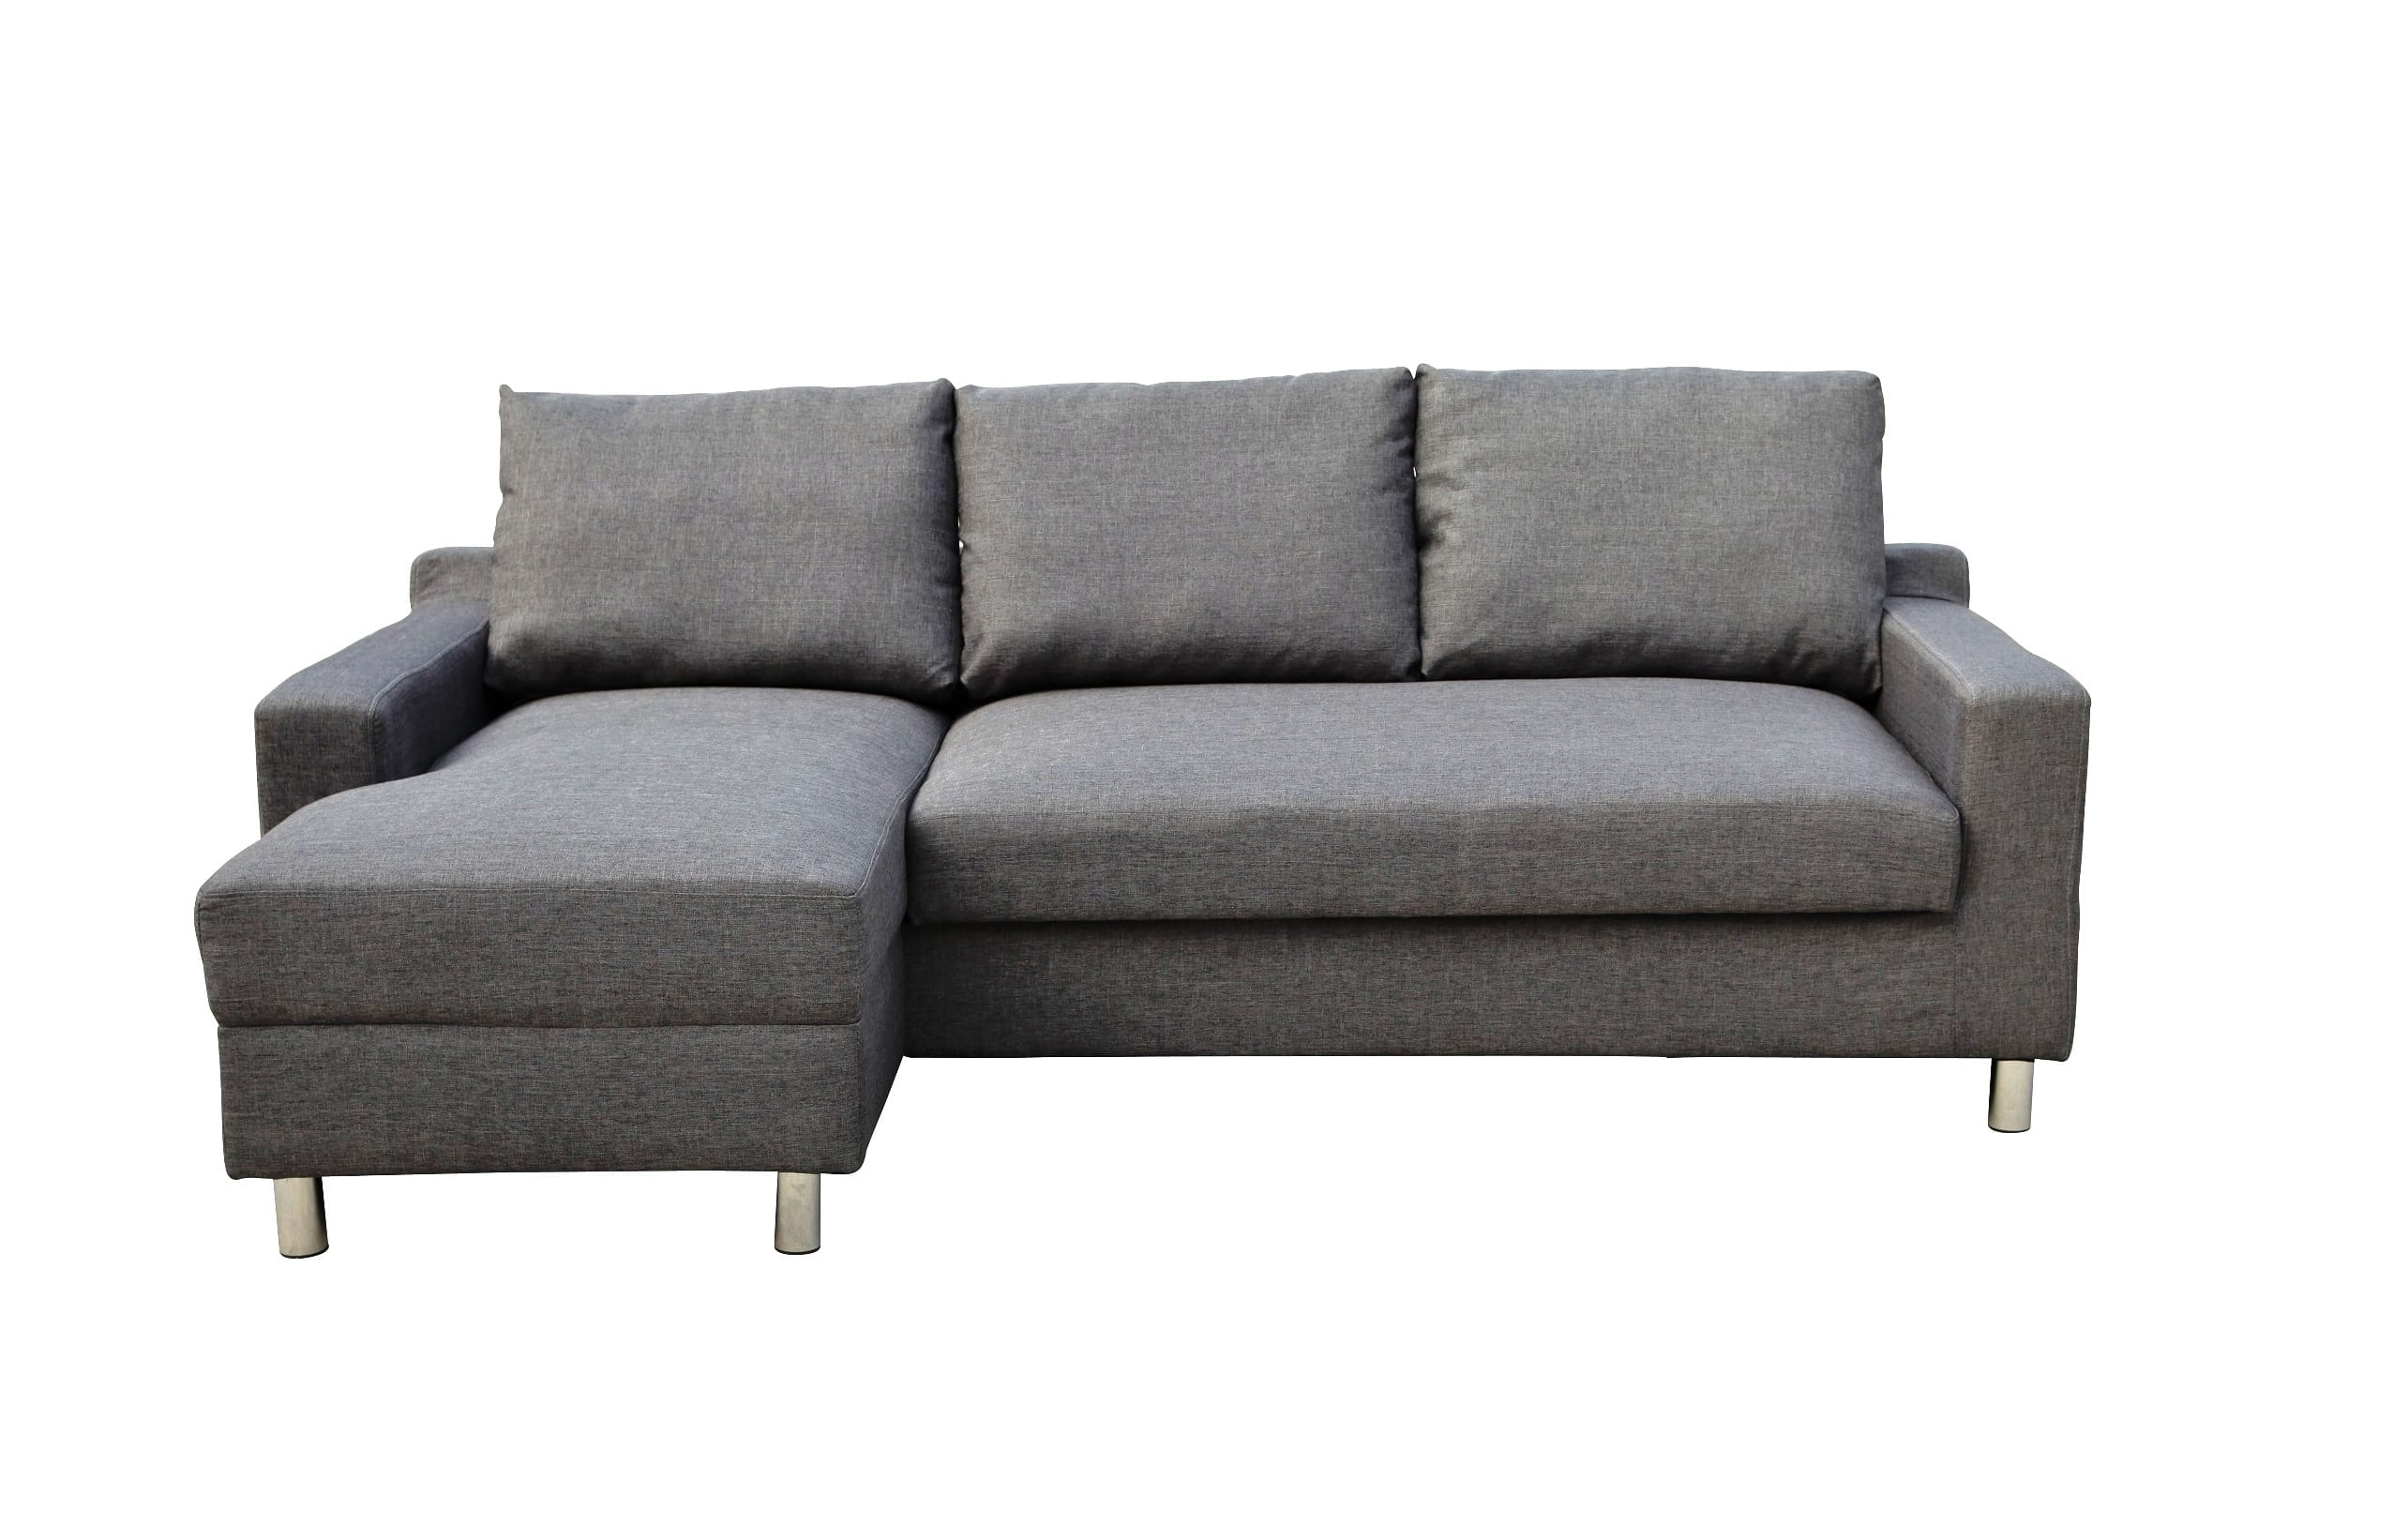 Turin Sectional Sofa by New Spec